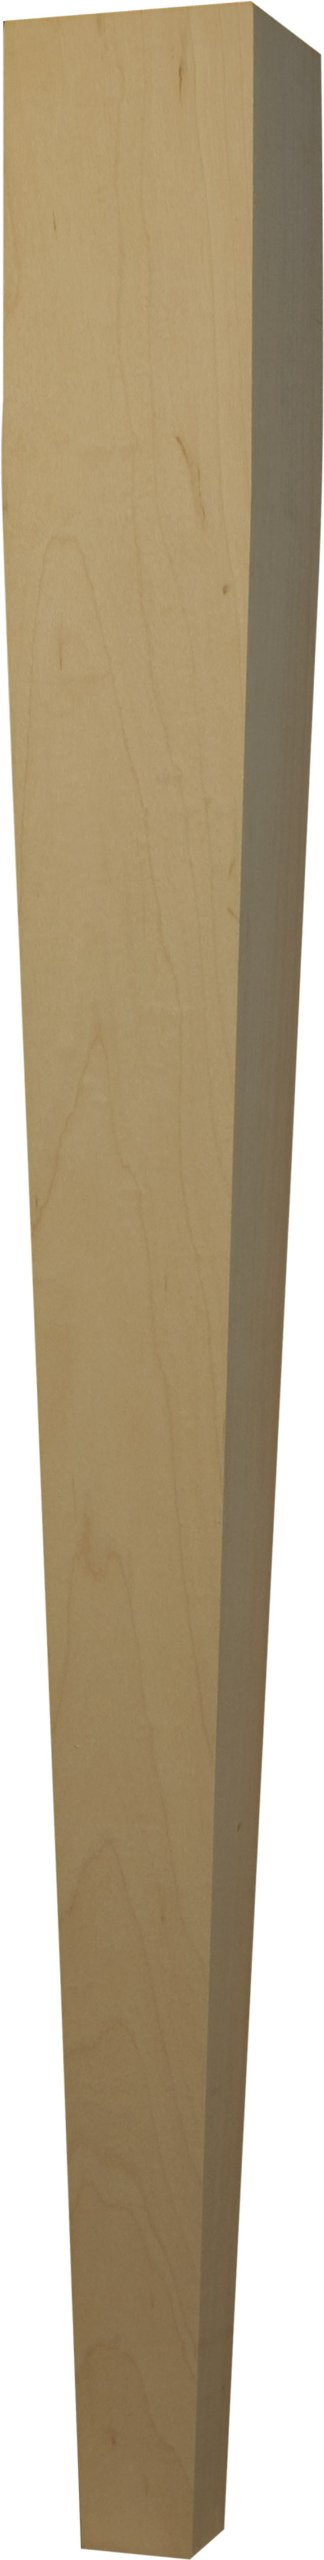 One Piece Square Dining Table Leg with a Four-Sided Taper in Soft Maple - Dimensions: 29 x 2 3/4 inches